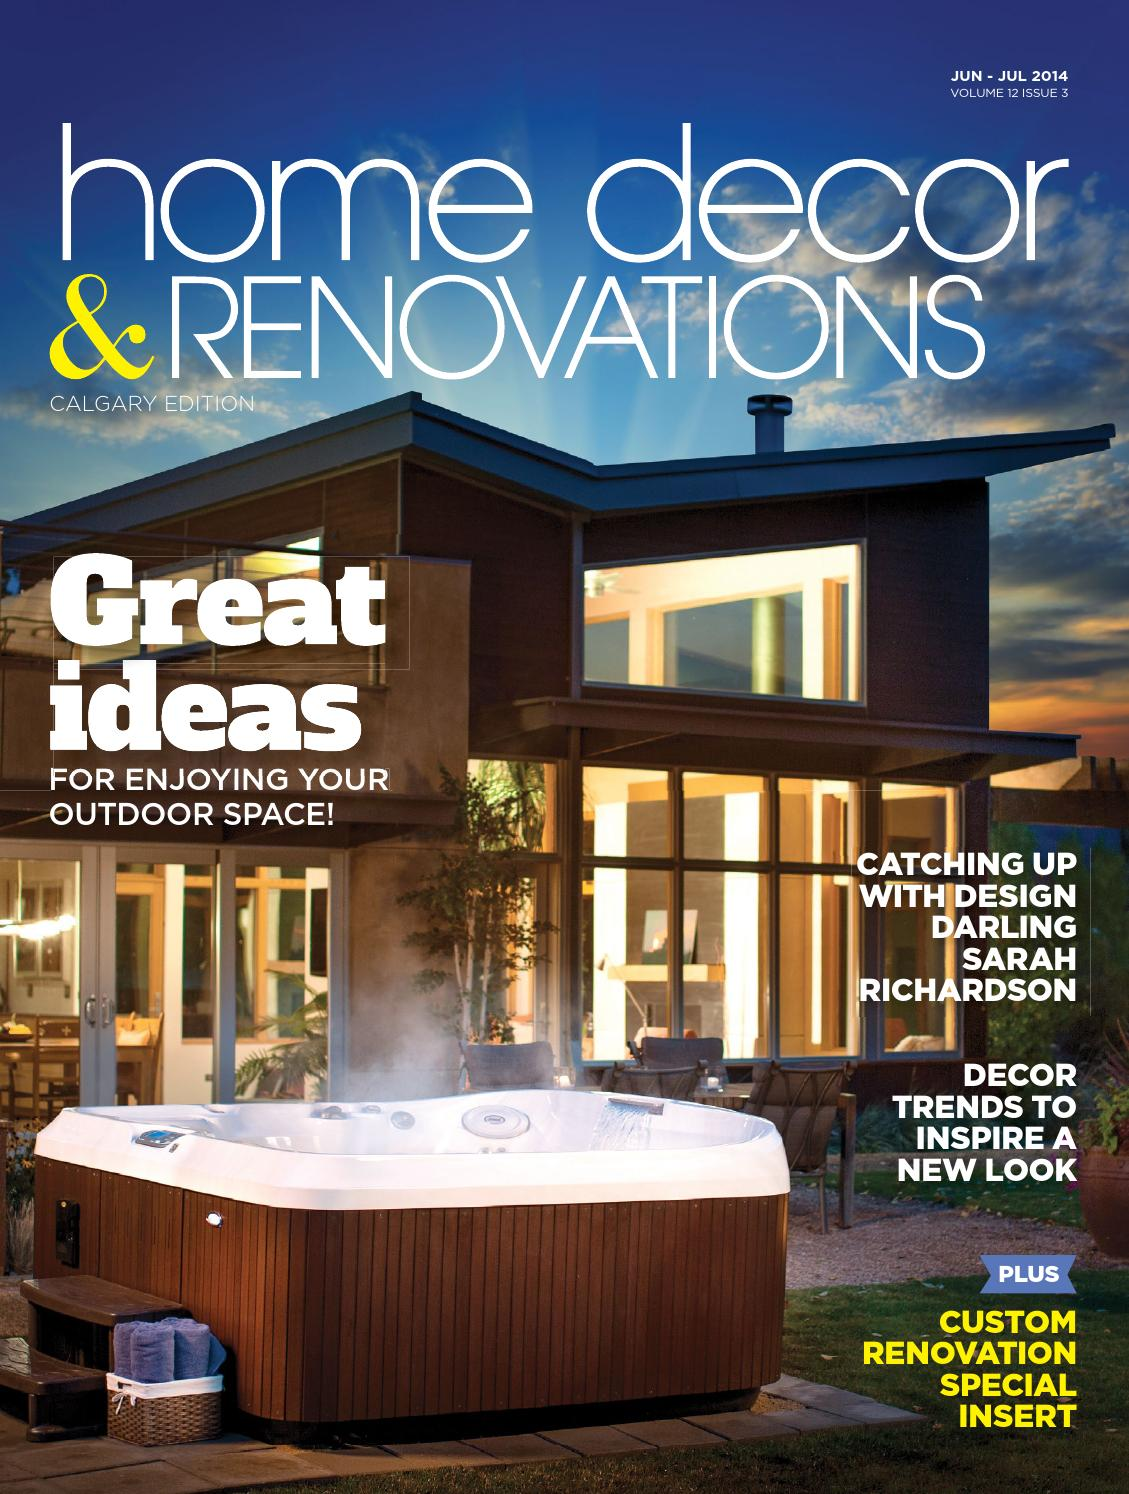 Unique Home Renovations Calgary Home Decor Renovations Jun Jul 2014 By Nexthome Issuu